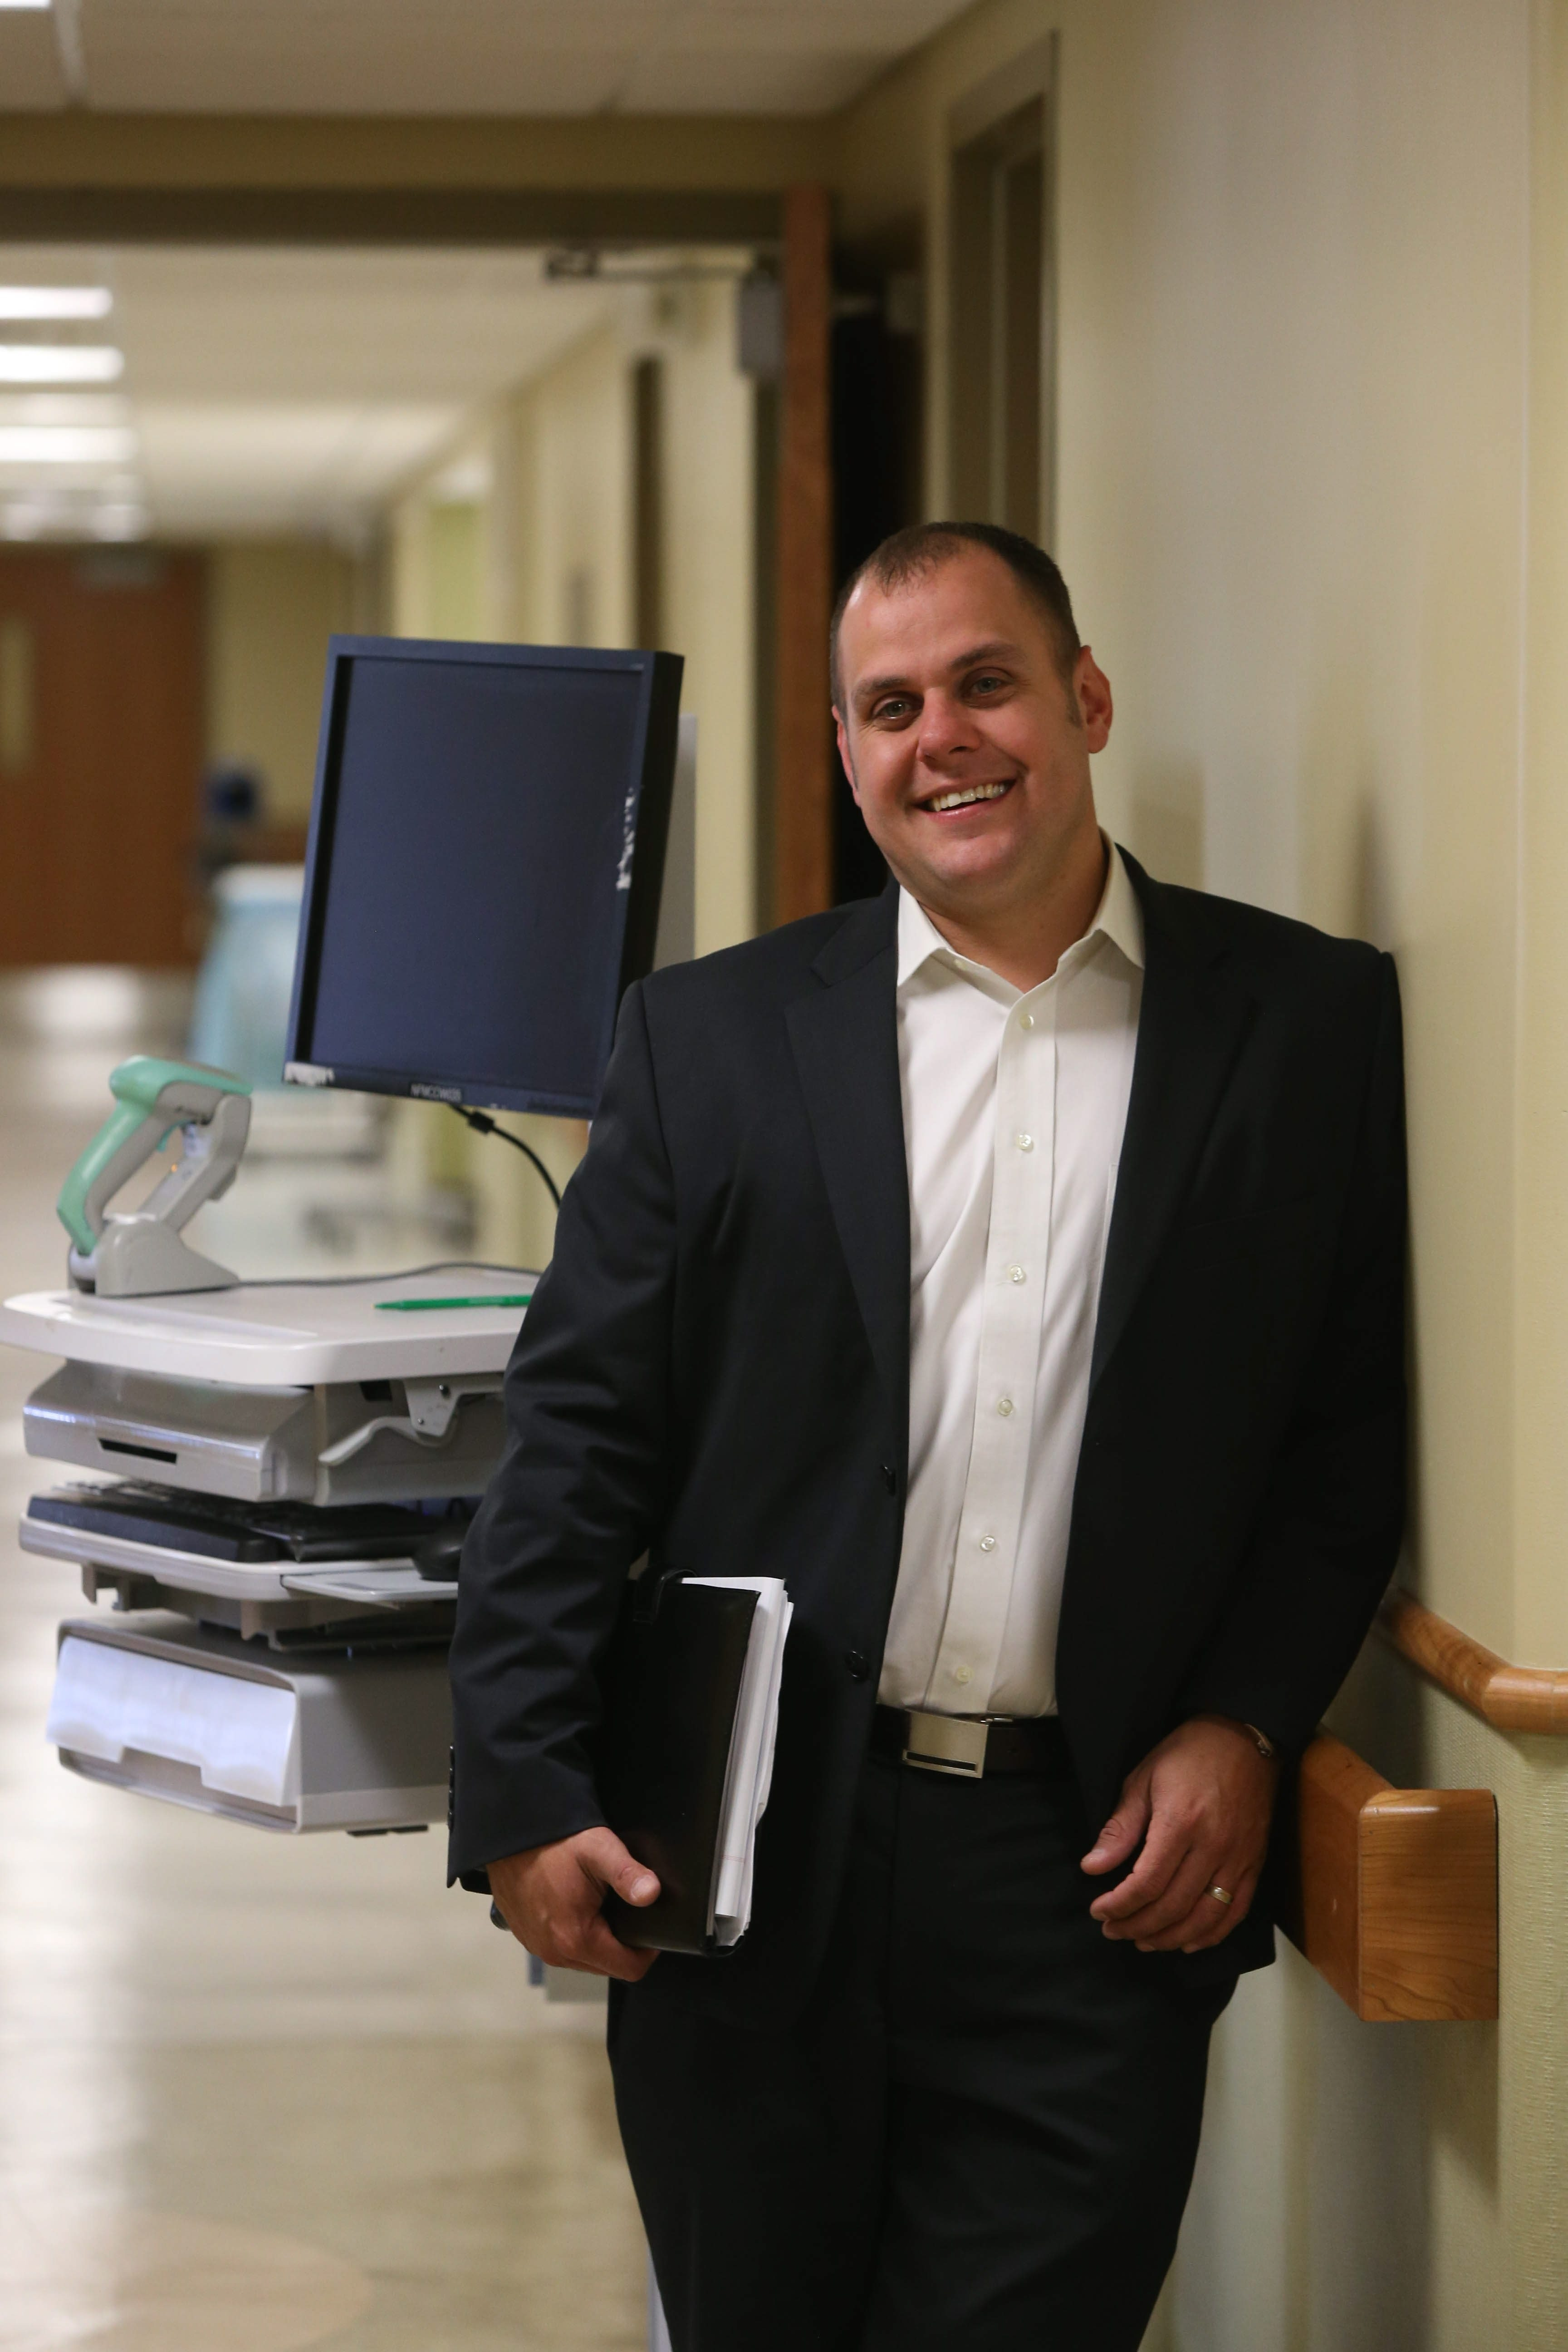 Aaron Wilson discusses his role as the program director of the new Wound Care Center at Niagara Falls Memorial Medical Center.